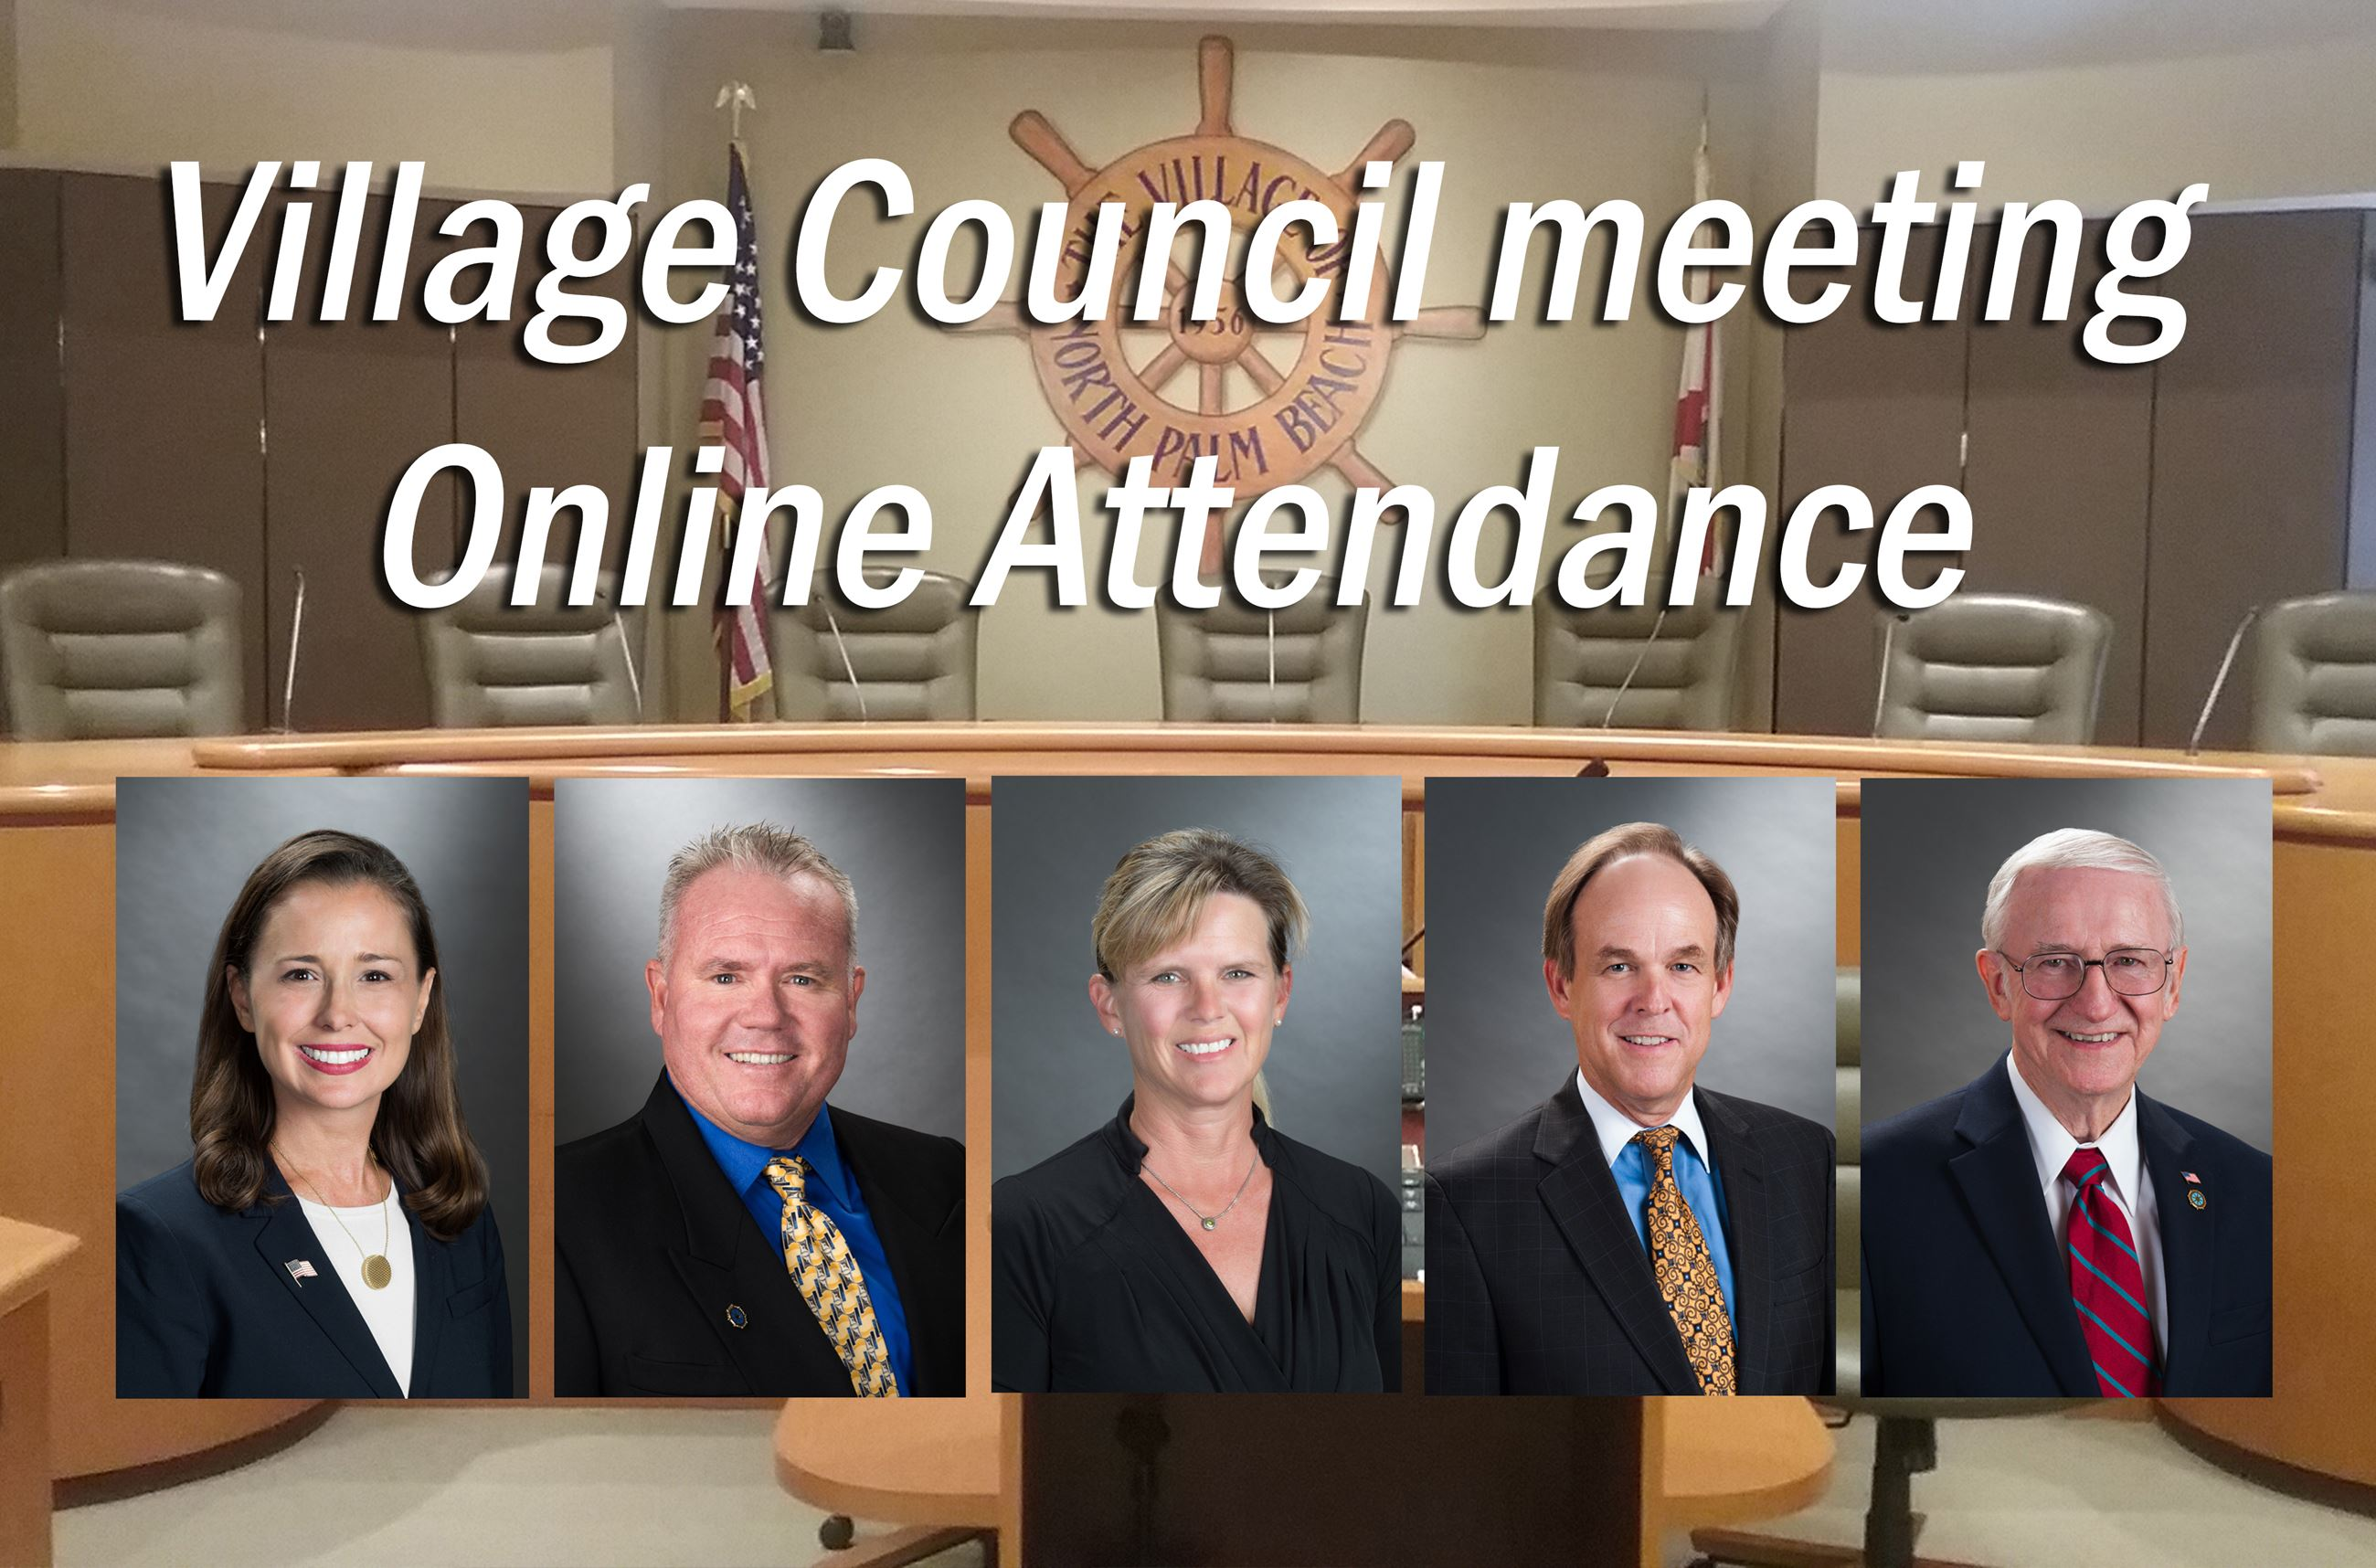 Council Virtual attendance composite